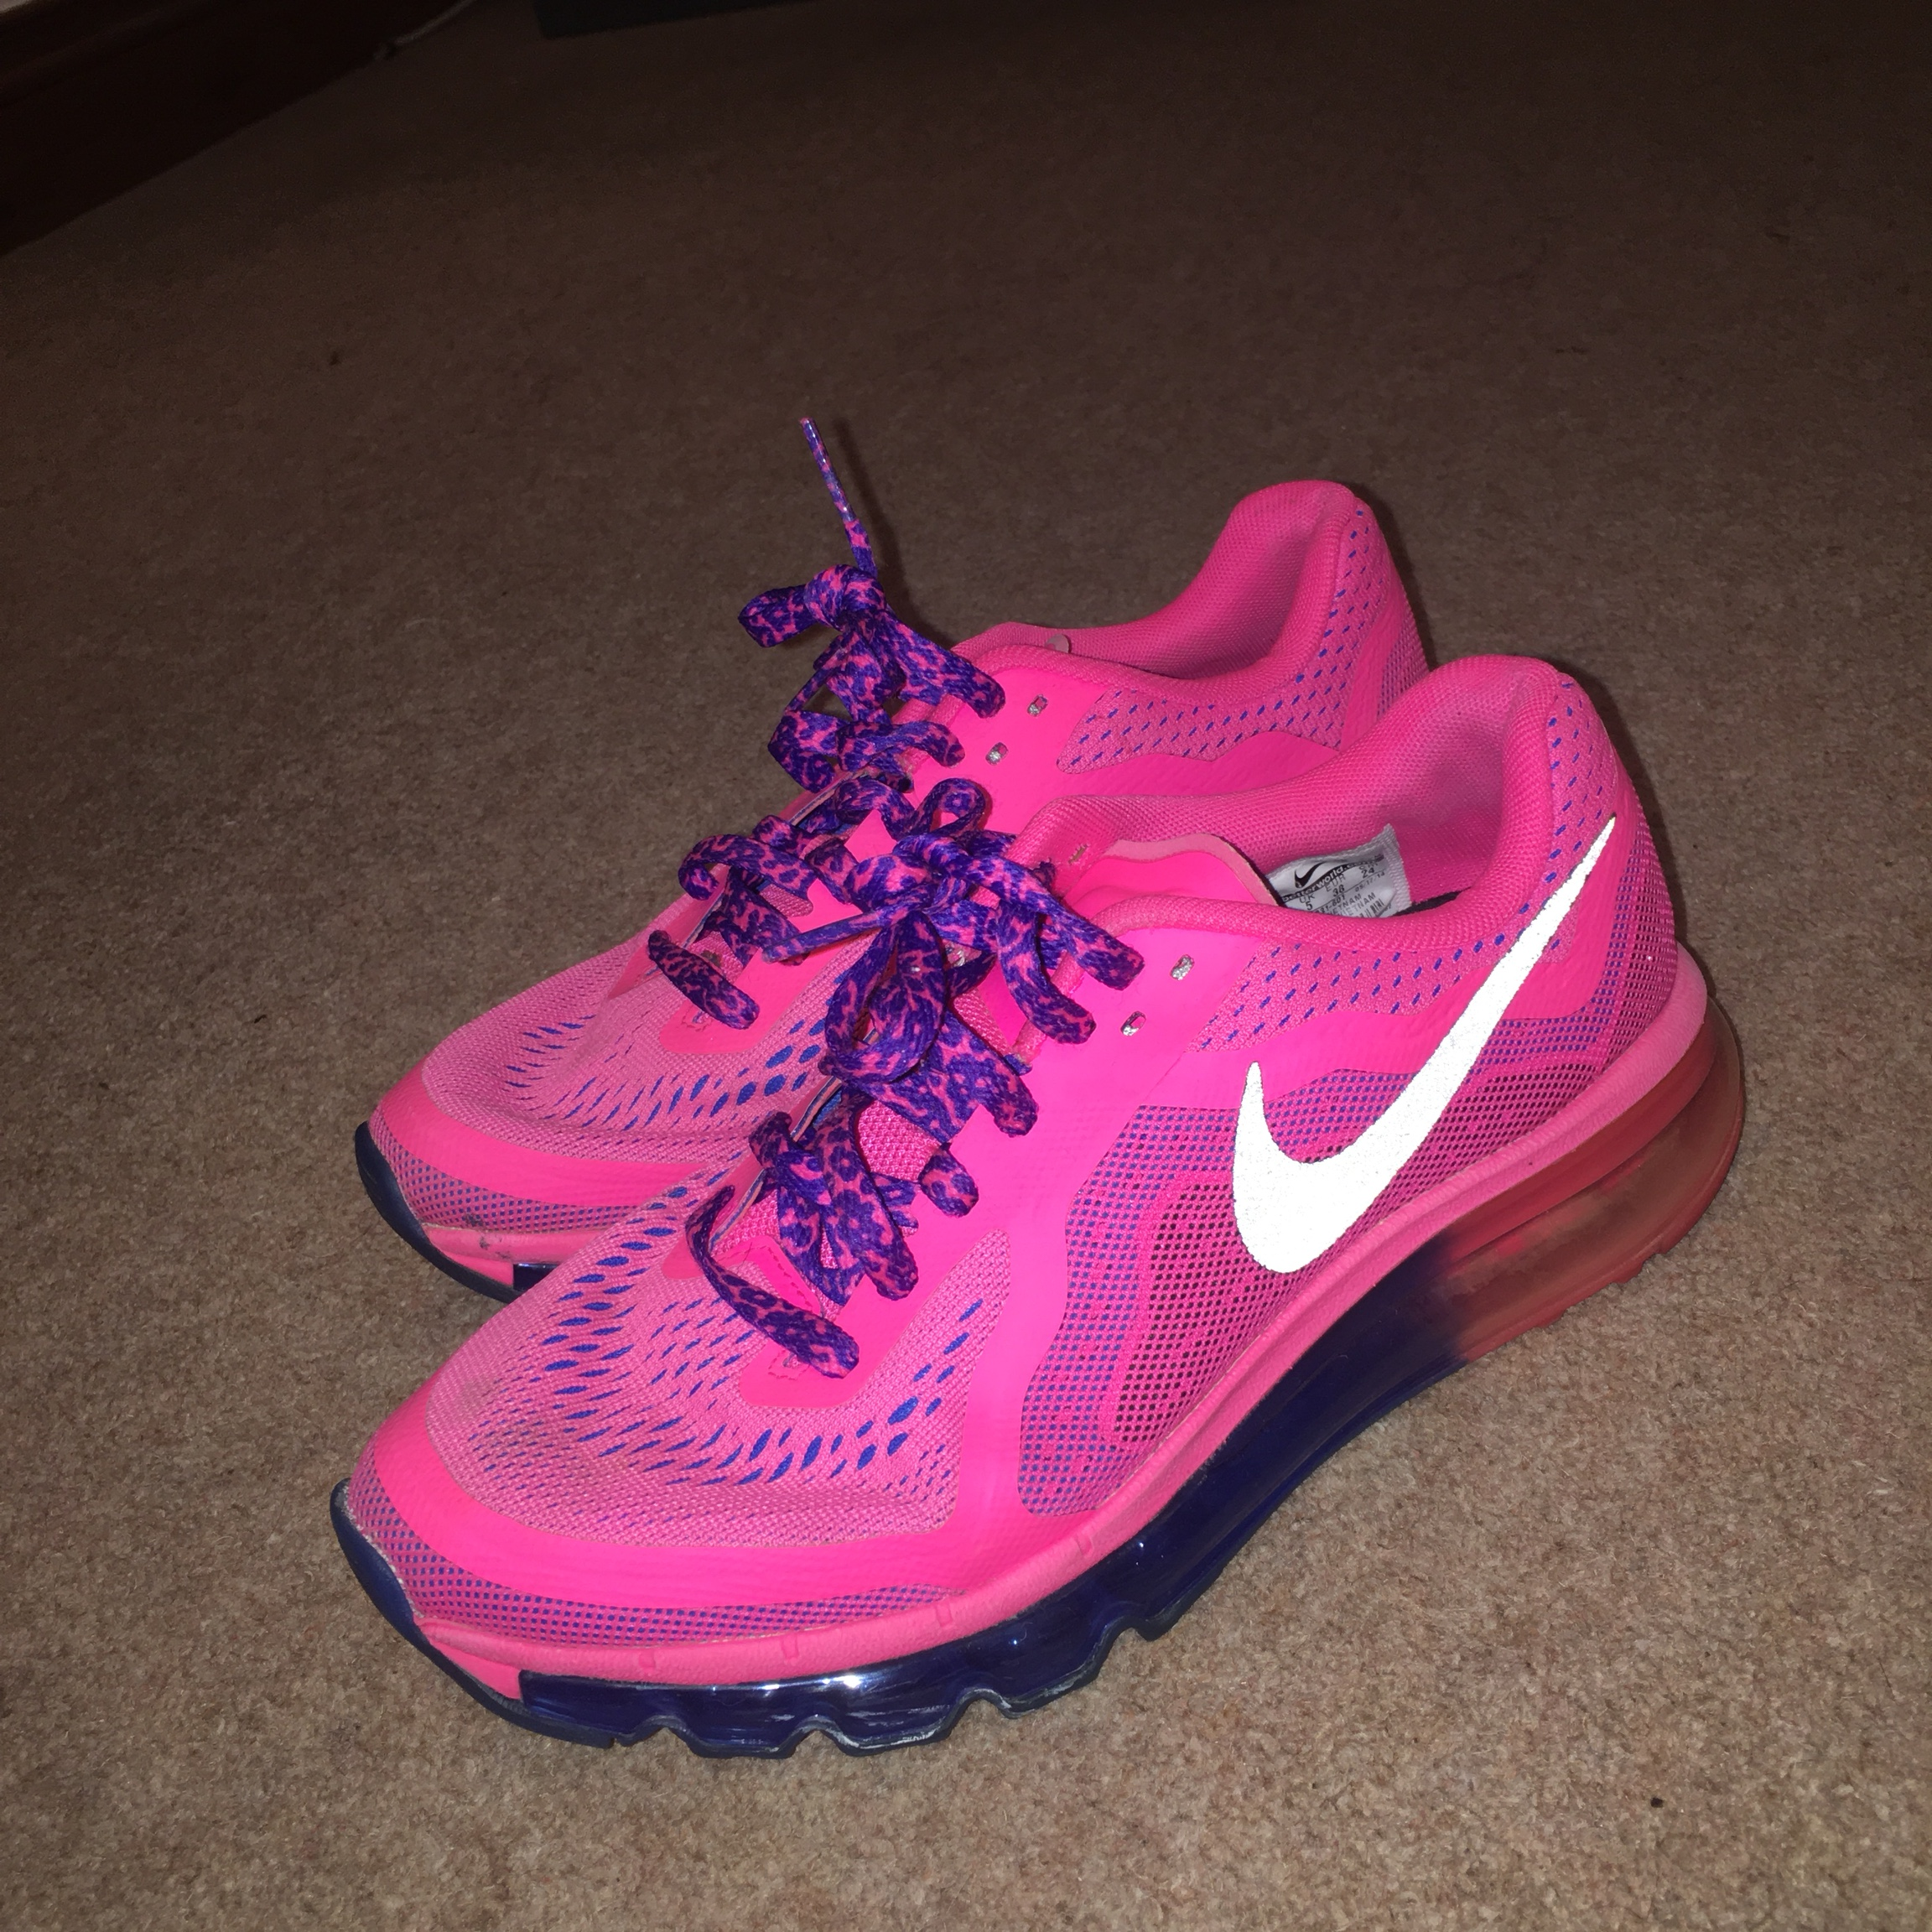 Nike Pink nike air max with purple and